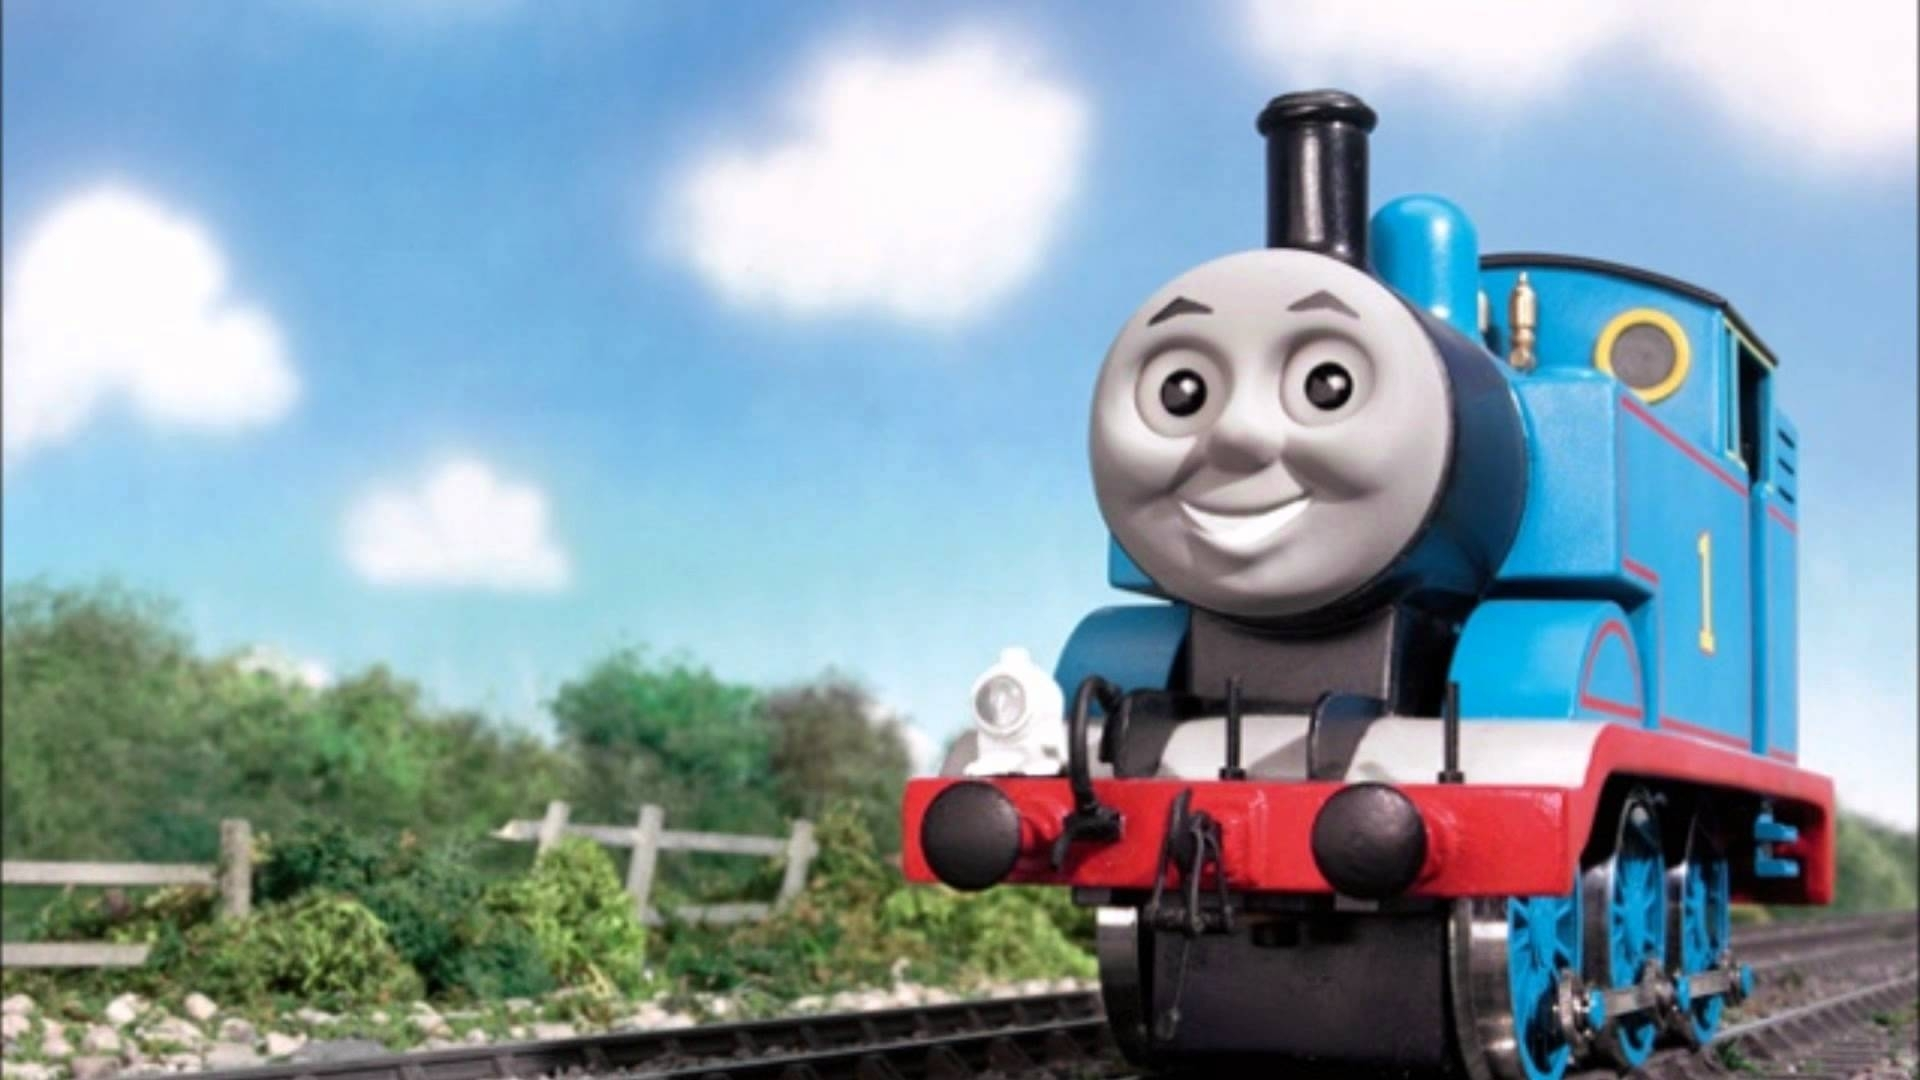 10 Latest Thomas The Tank Engine Wallpaper FULL HD 1080p For PC Background